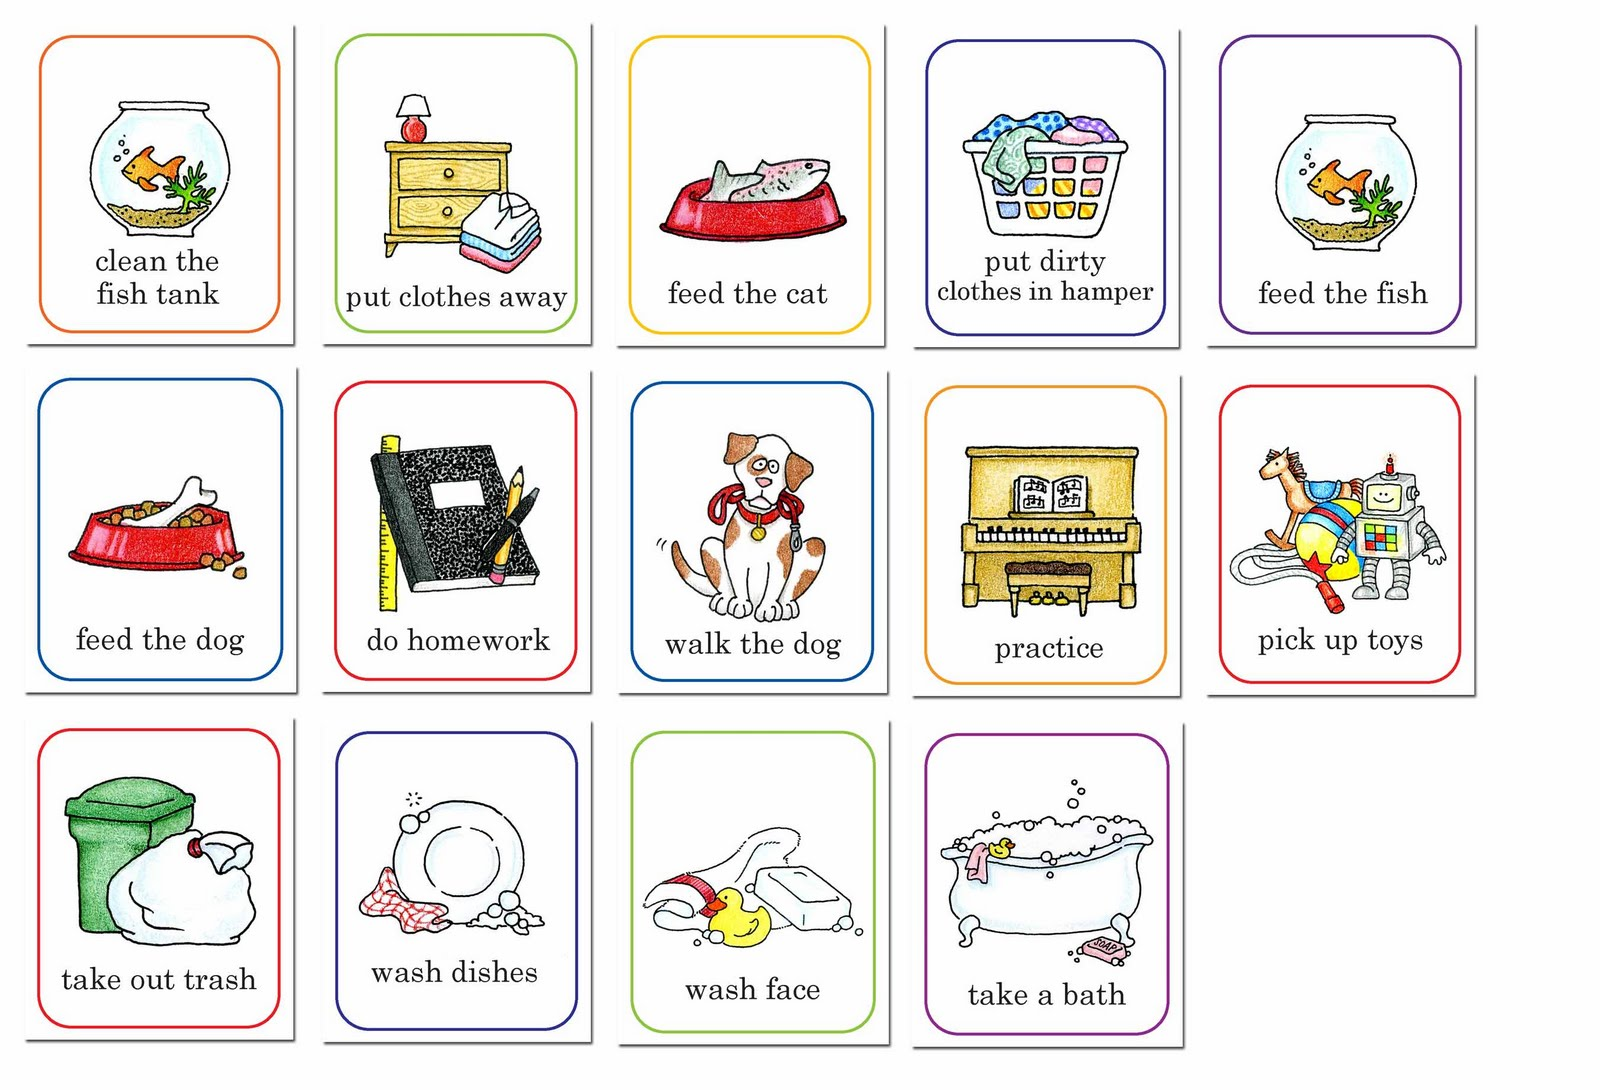 Chore chart images clipart jpg royalty free stock 60+ Chore Chart Clip Art | ClipartLook jpg royalty free stock